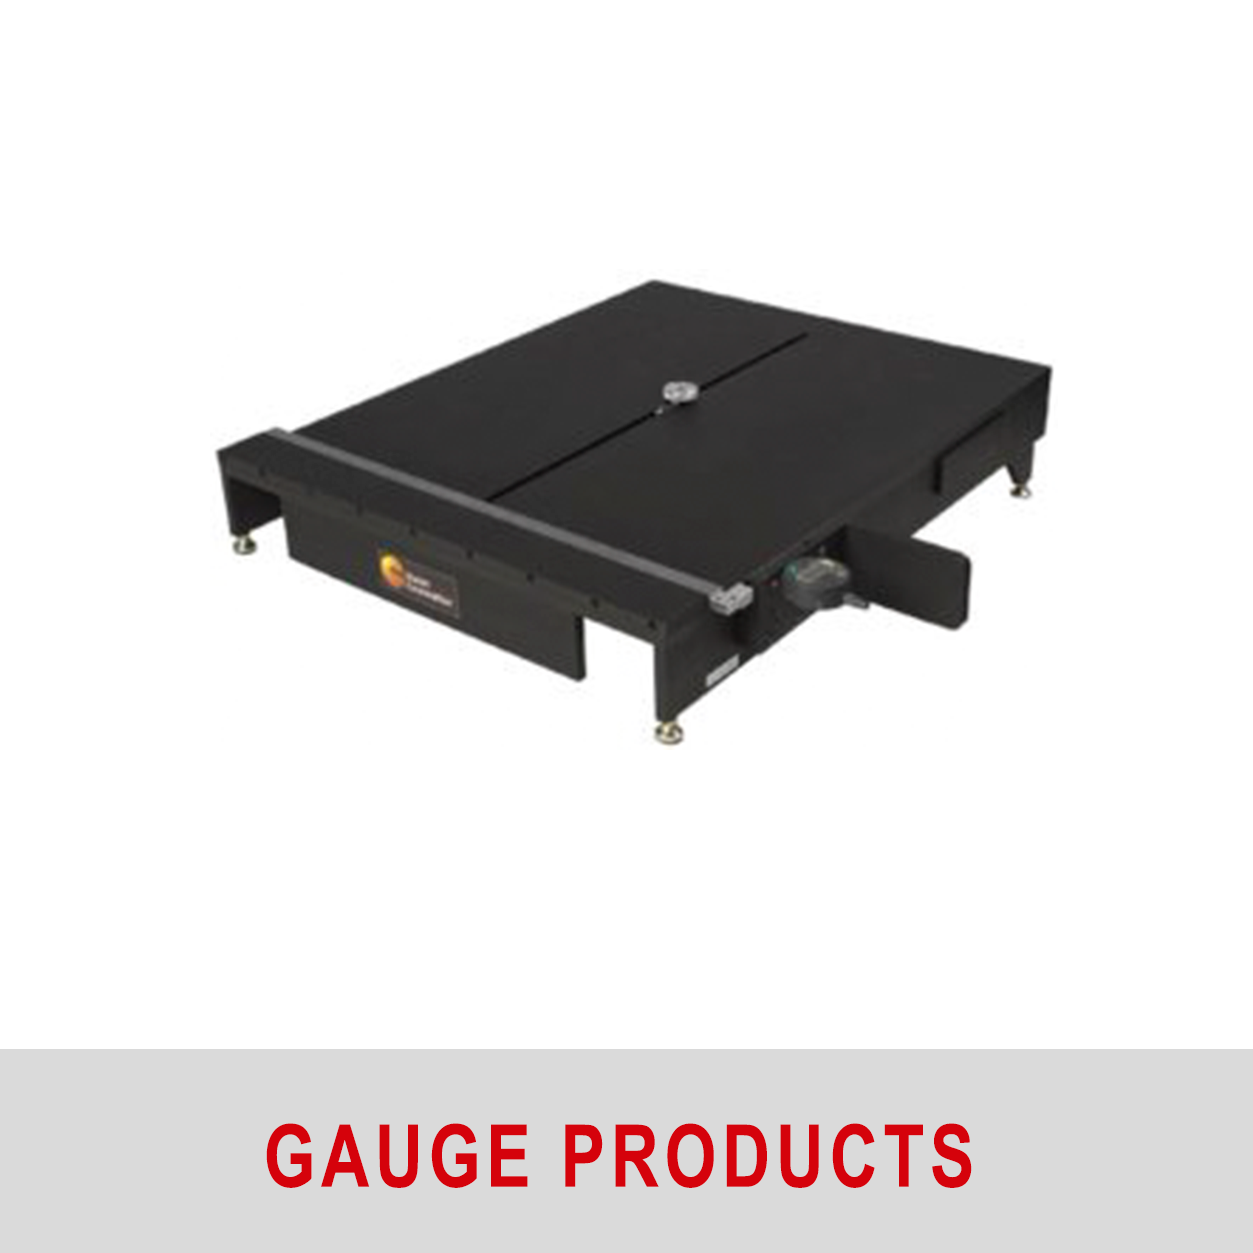 gaugeproducts_button